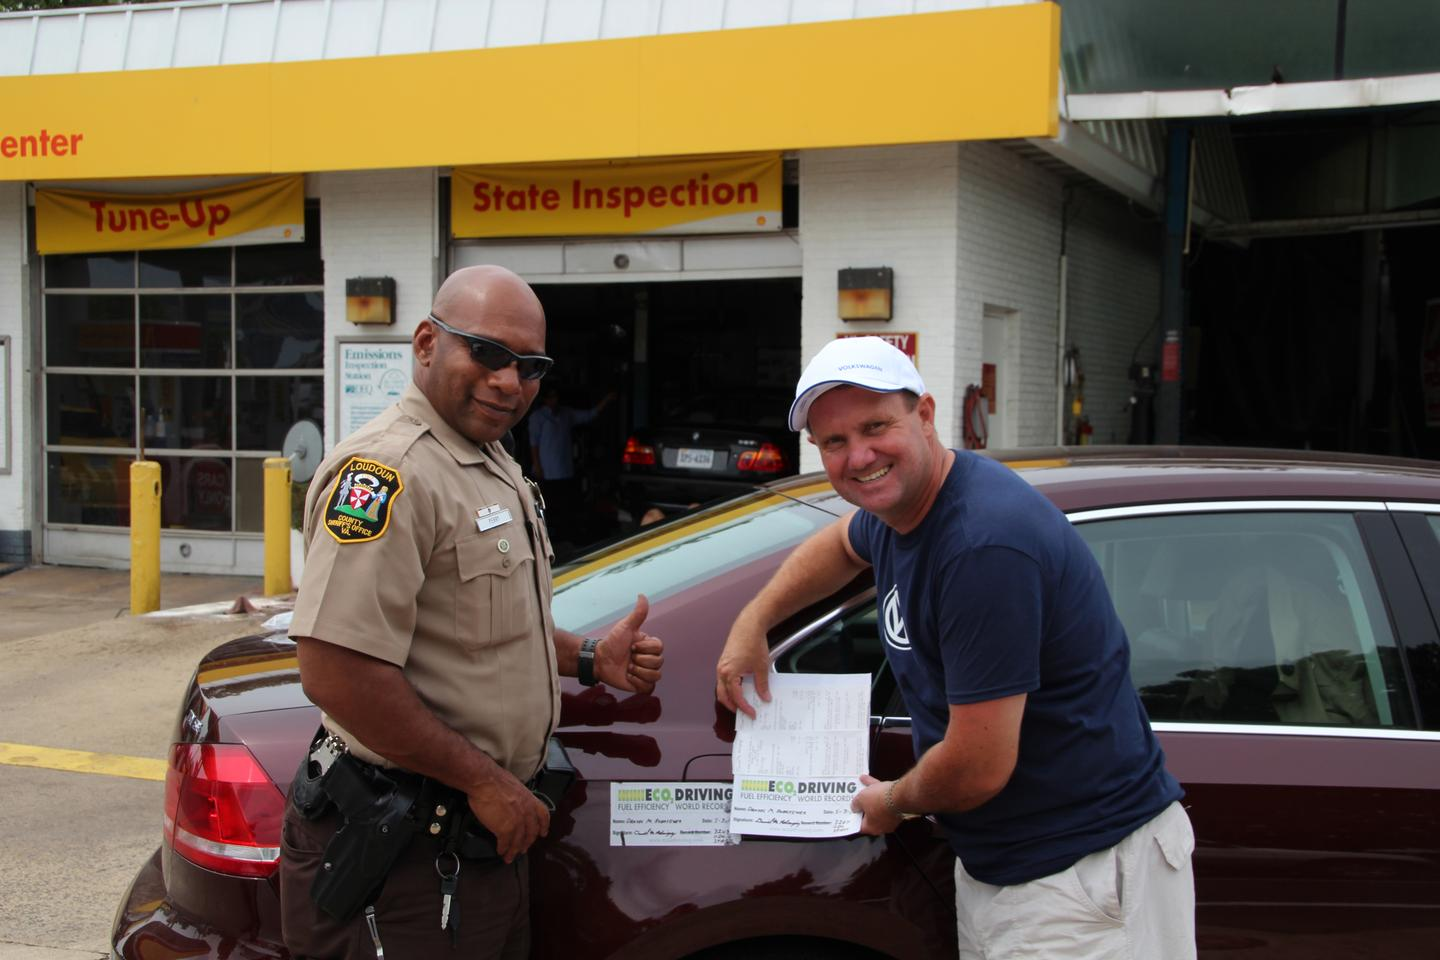 A Loudoun County, Virginia Sheriff's Deputy verifies the car's mileage before removing the fuel tank seal